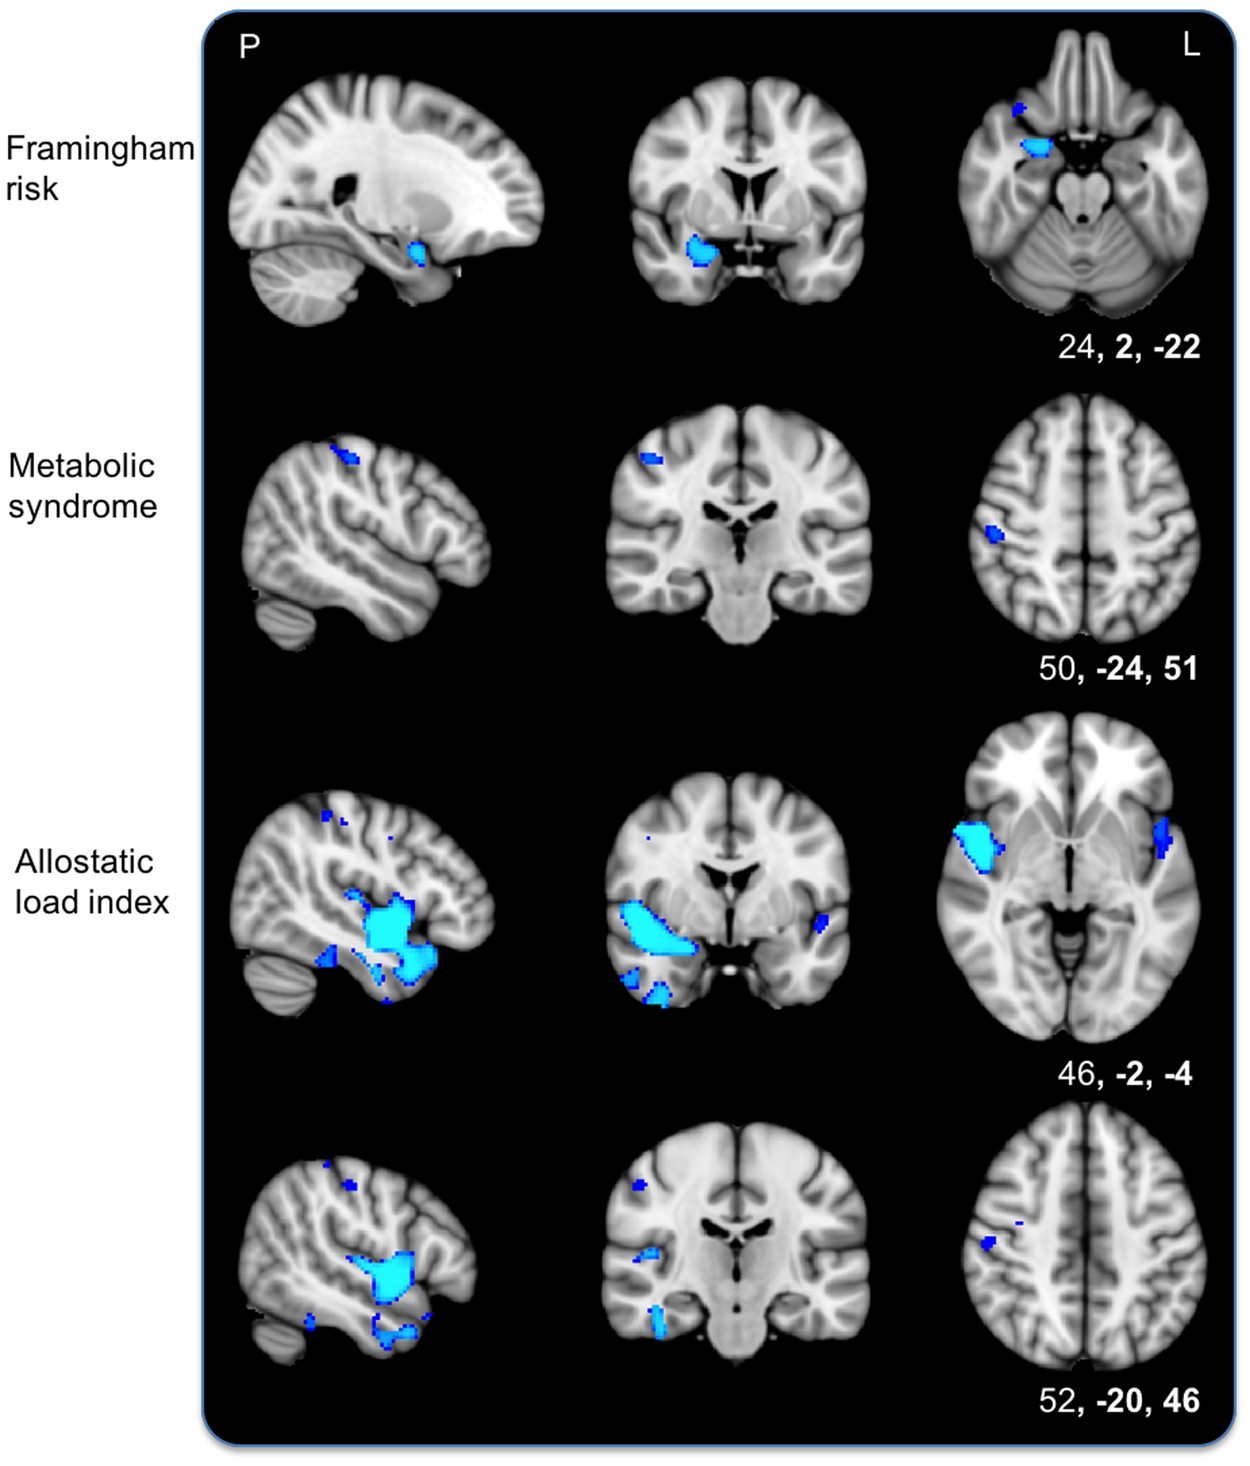 Allostatic load as a predictor of grey matter volume and white